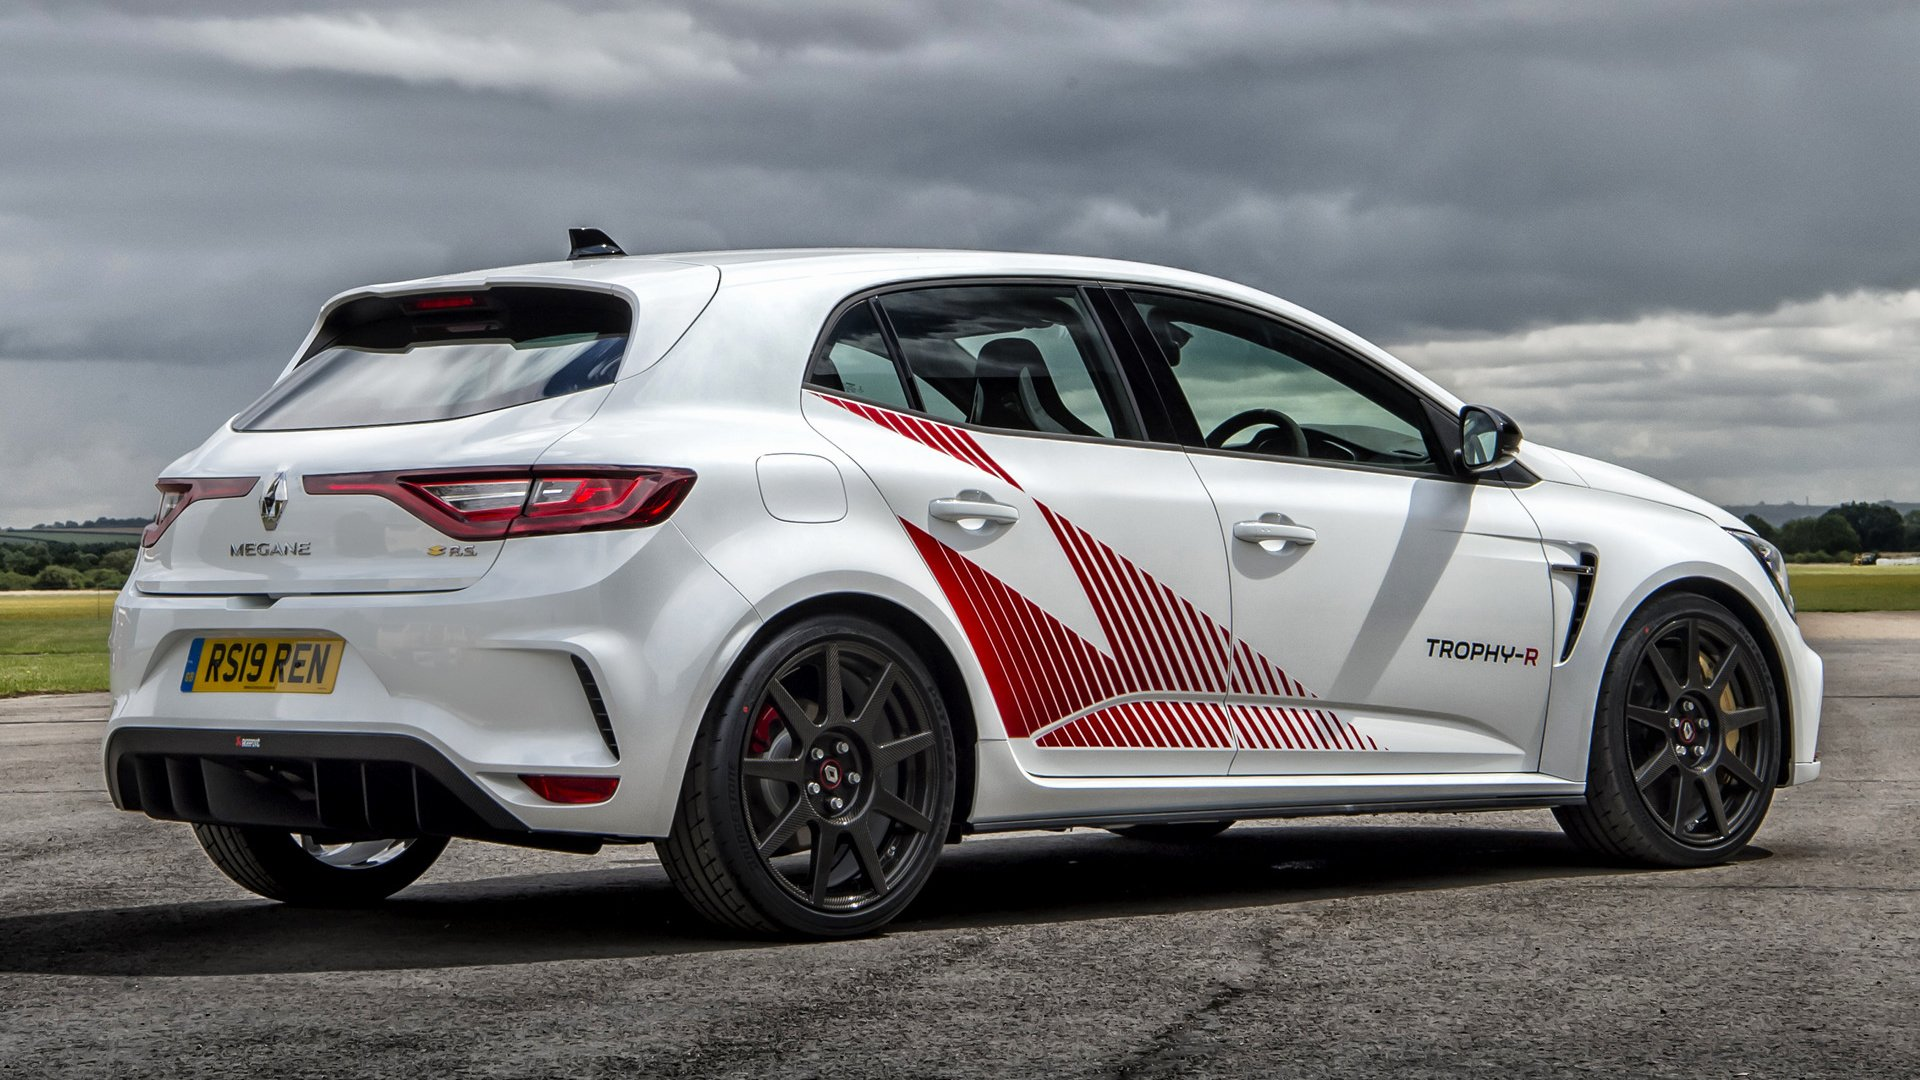 3 Renault Megane Rs Trophy R Hd Wallpapers Background Images Wallpaper Abyss